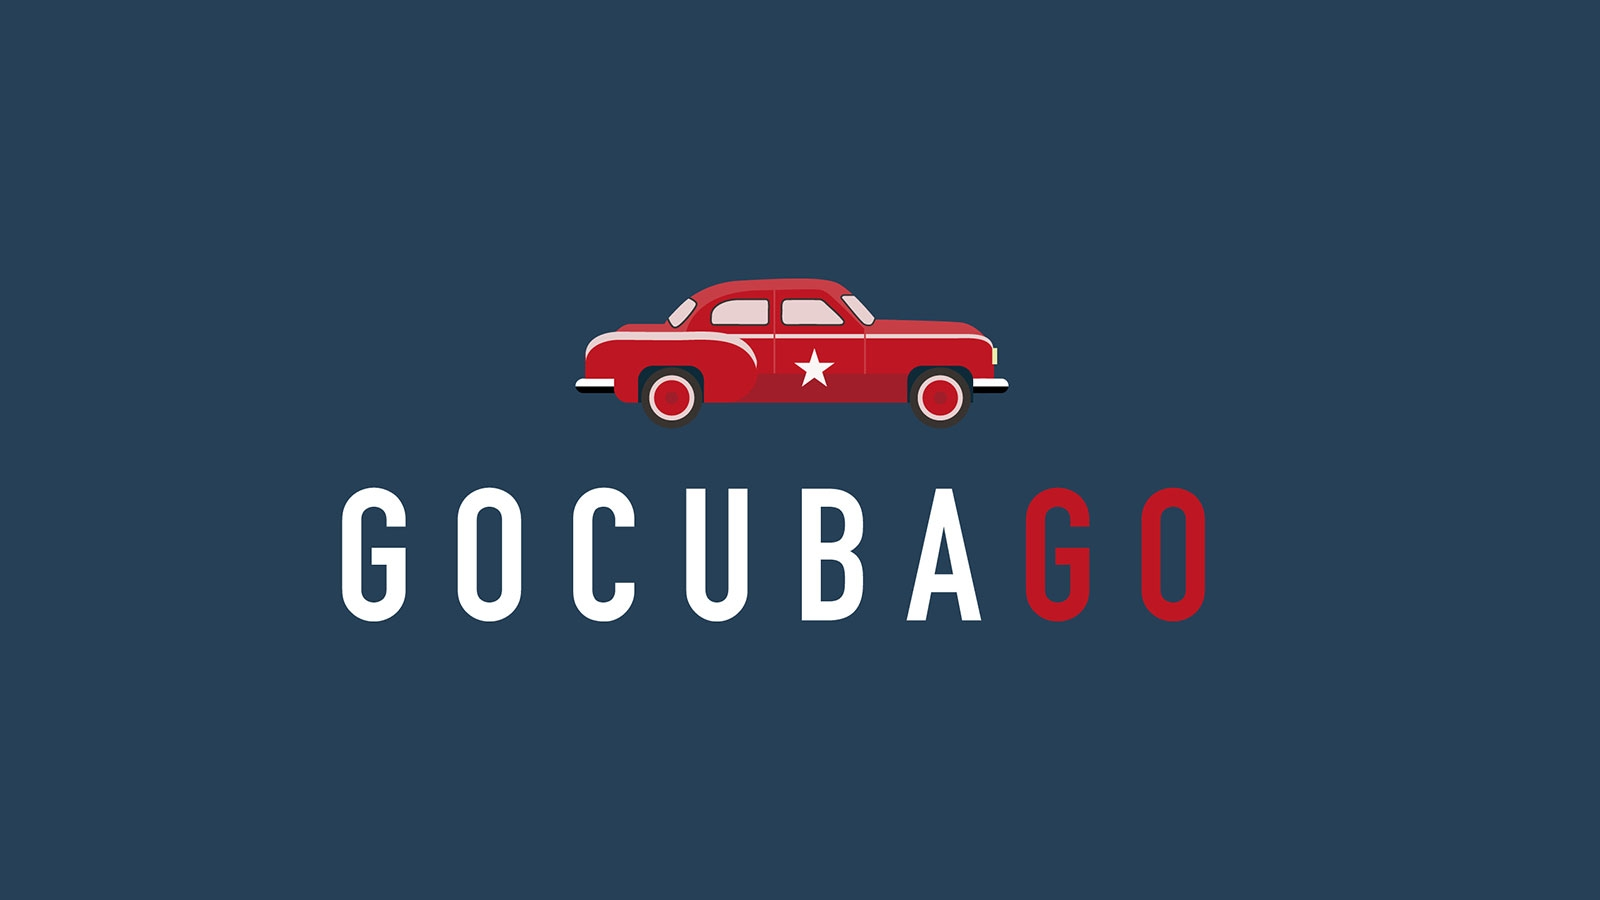 Go Cuba Go | gocubago.com | 2018 (Logo No 02) © echonet communication GmbH